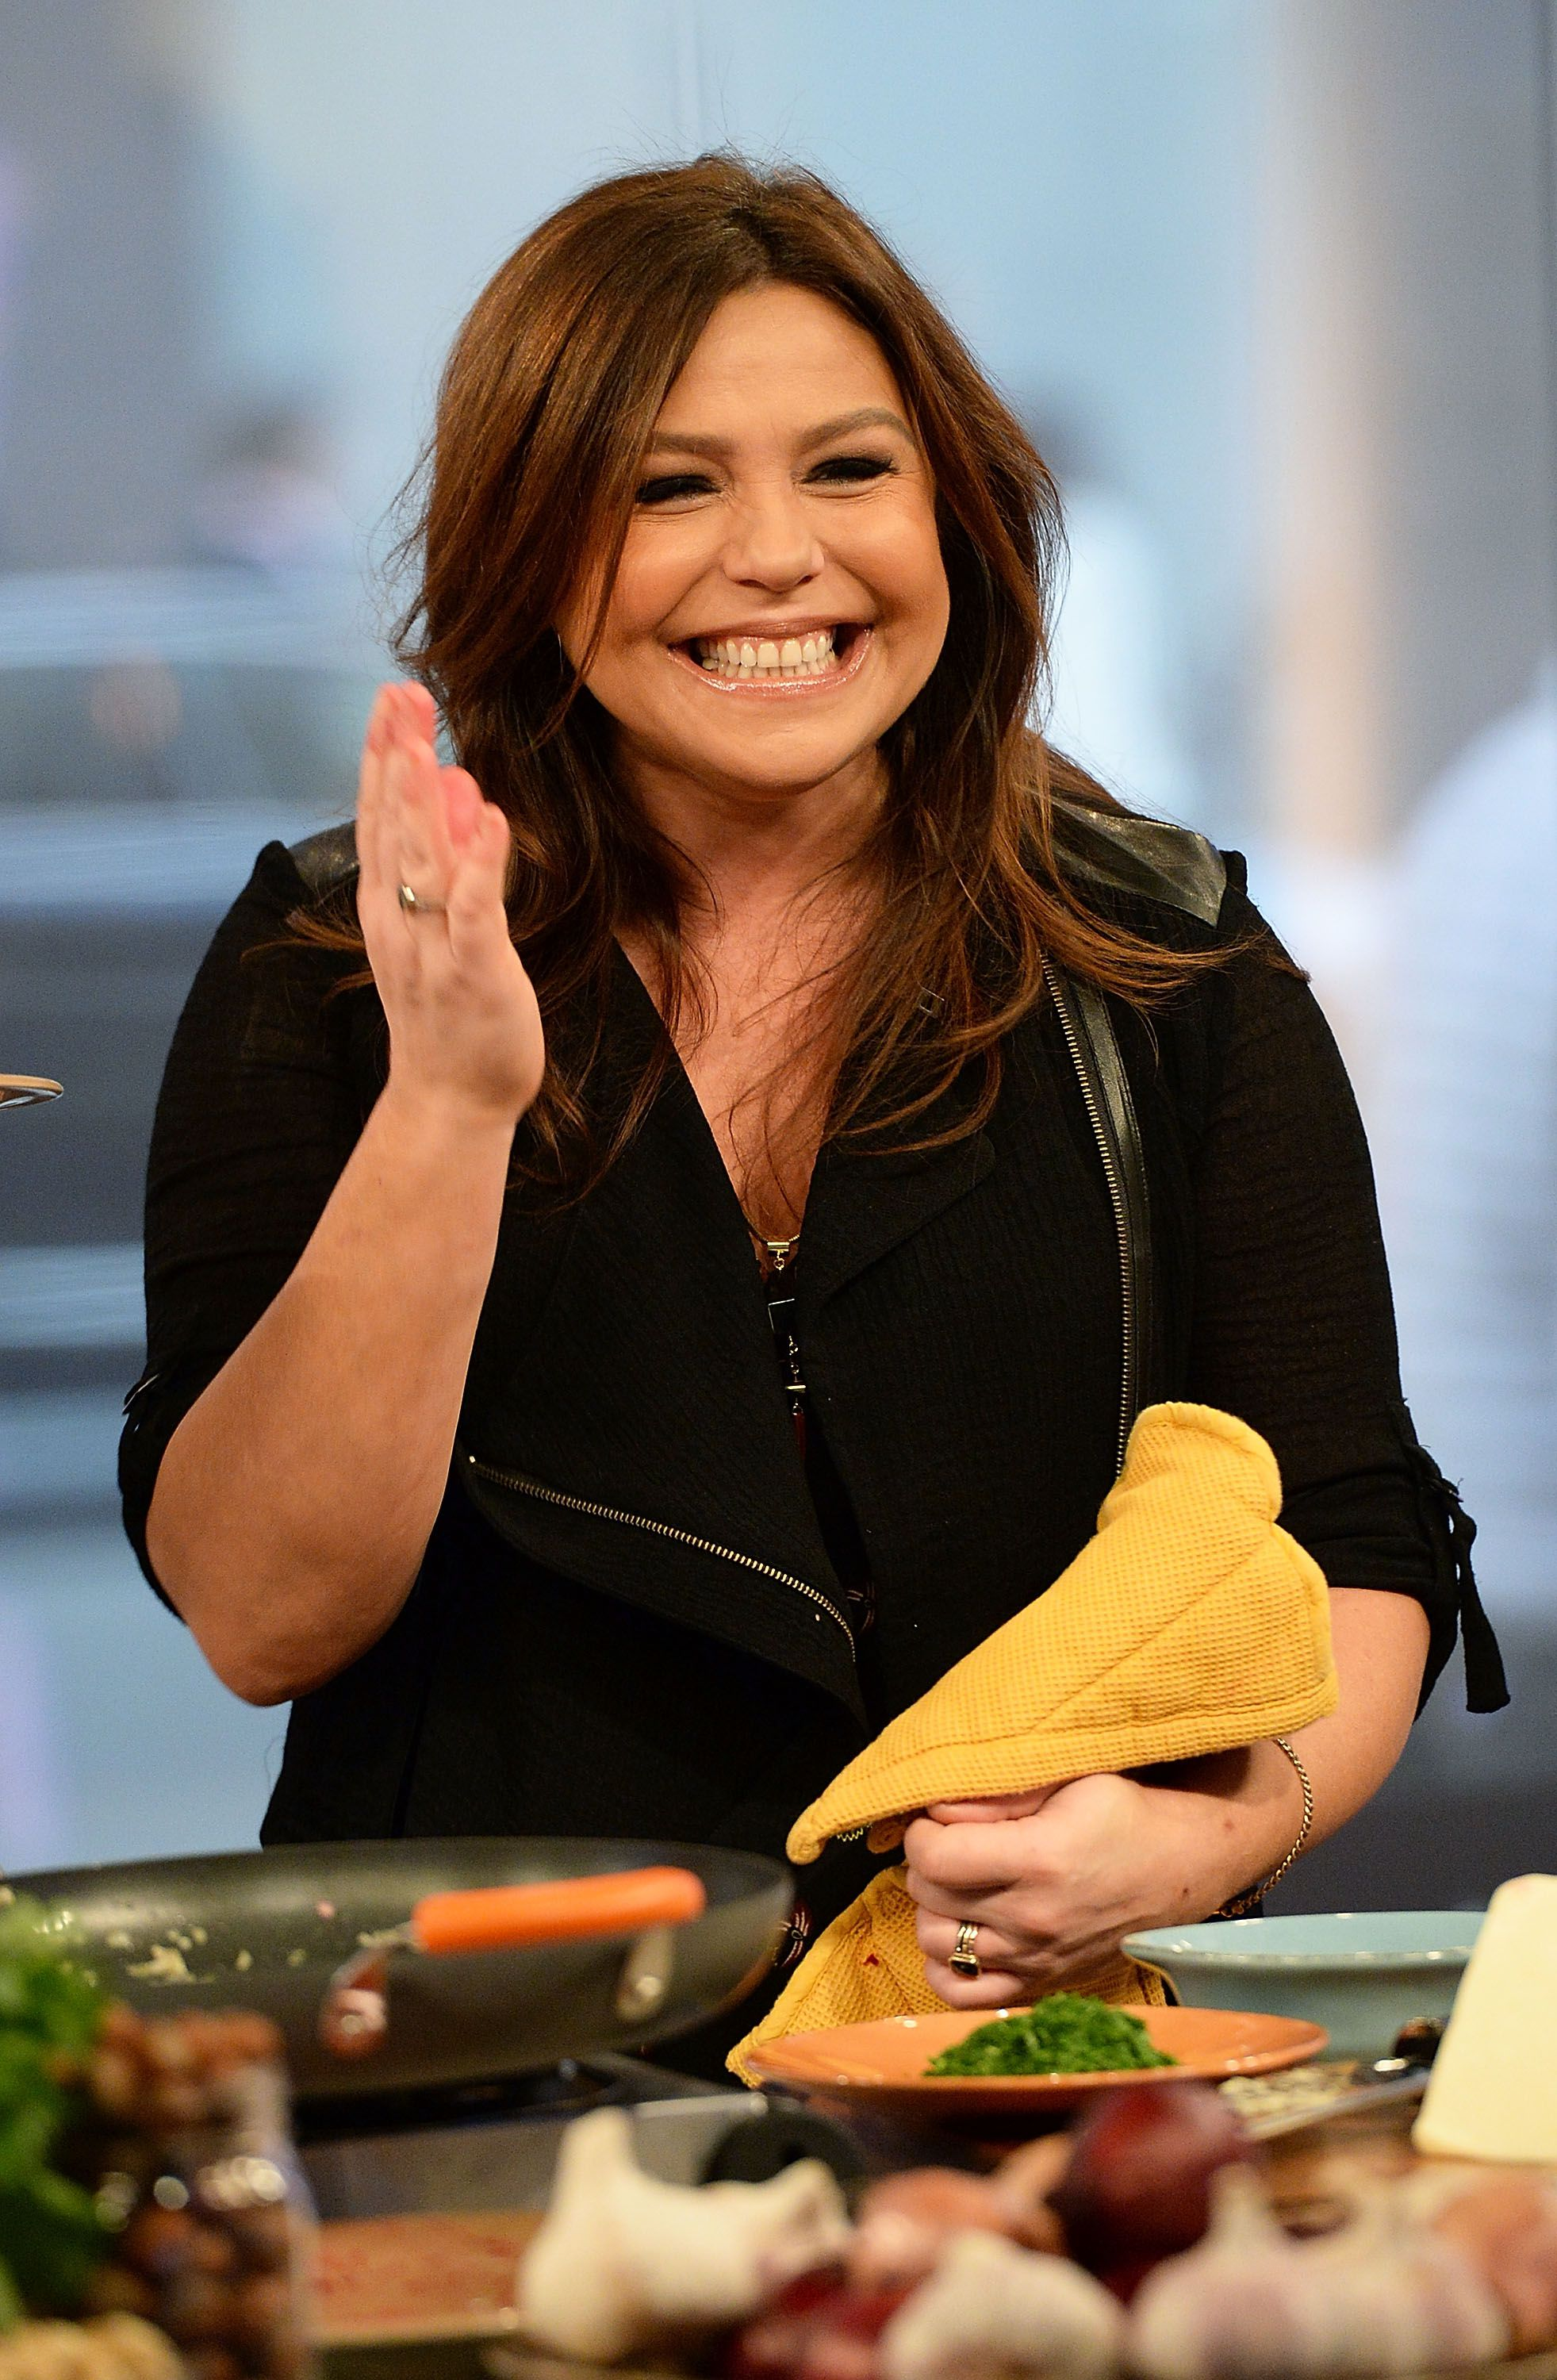 Rachael Ray Celebrity Chef Biography